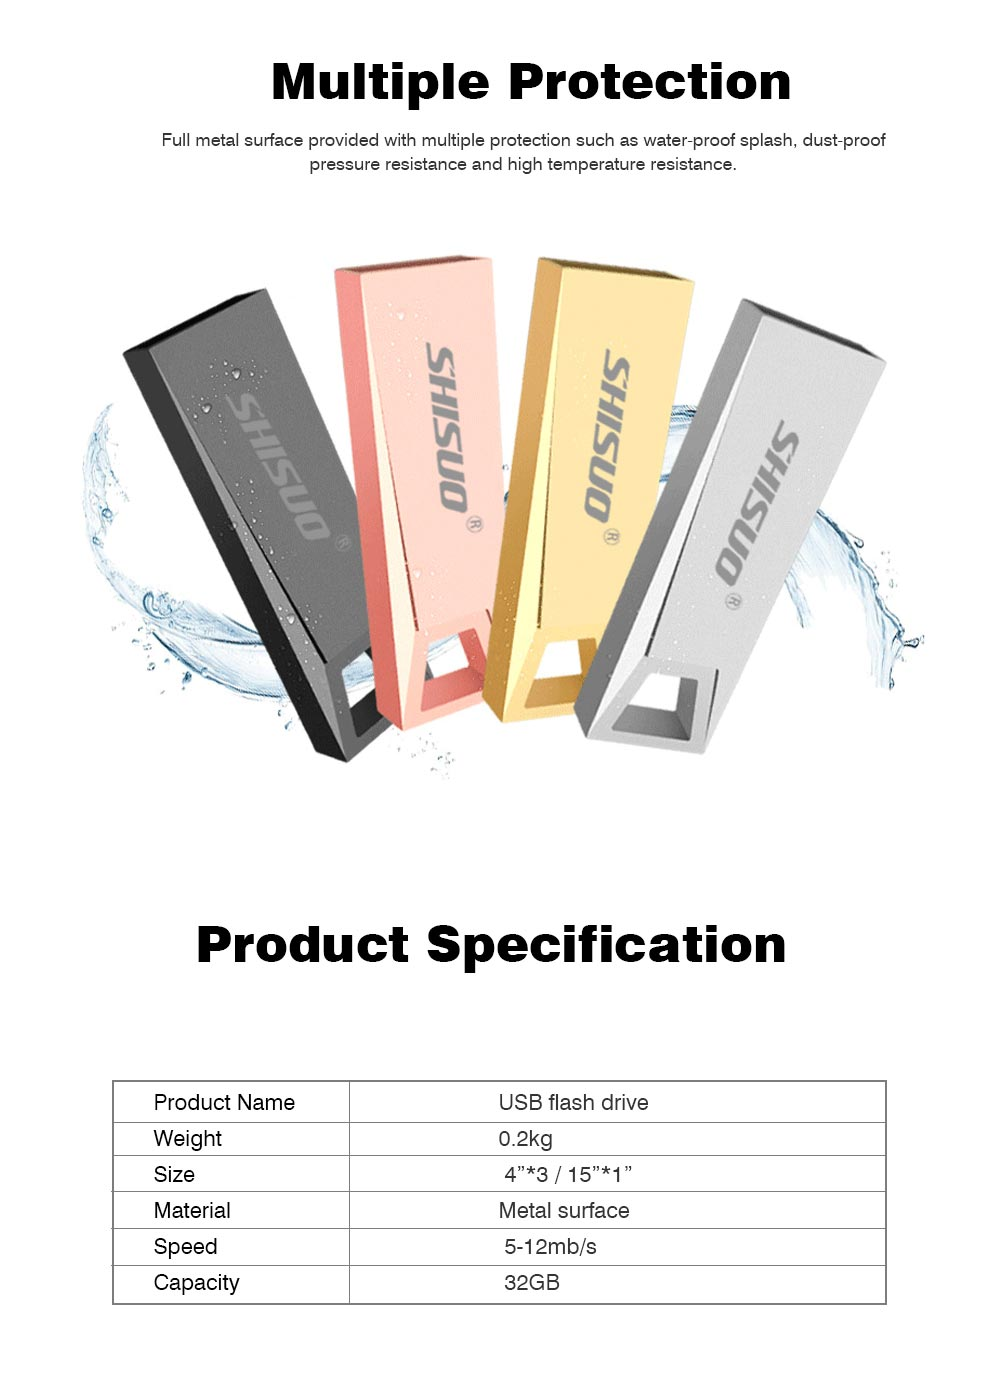 Metal Waterproof Flash Drive for iPhone iPad,USB 4GB, 8GB, 32GB 64GB, 128GB External Storage Memory Expansion Compatible with iOS Devices, Windows and Mac 6